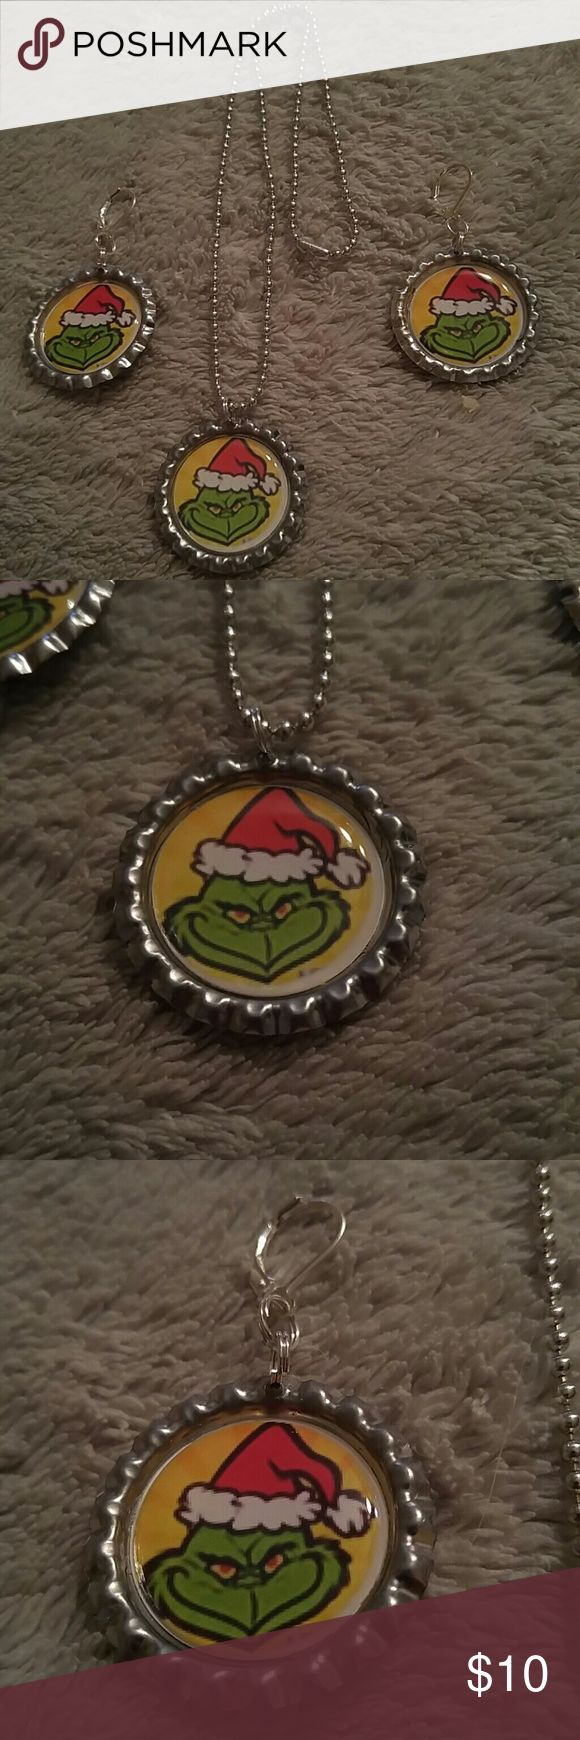 "The GRINCH Bottlecap Necklace & Earrings Set 1"" flattened silver Bottlecap necklace and earrings set with a picture of the GRINCH in a a Santa hat....comes on 18"" ball chain....Both Bottlecap and chain made of aluminum so they are lightweight. Jewelry Necklaces"